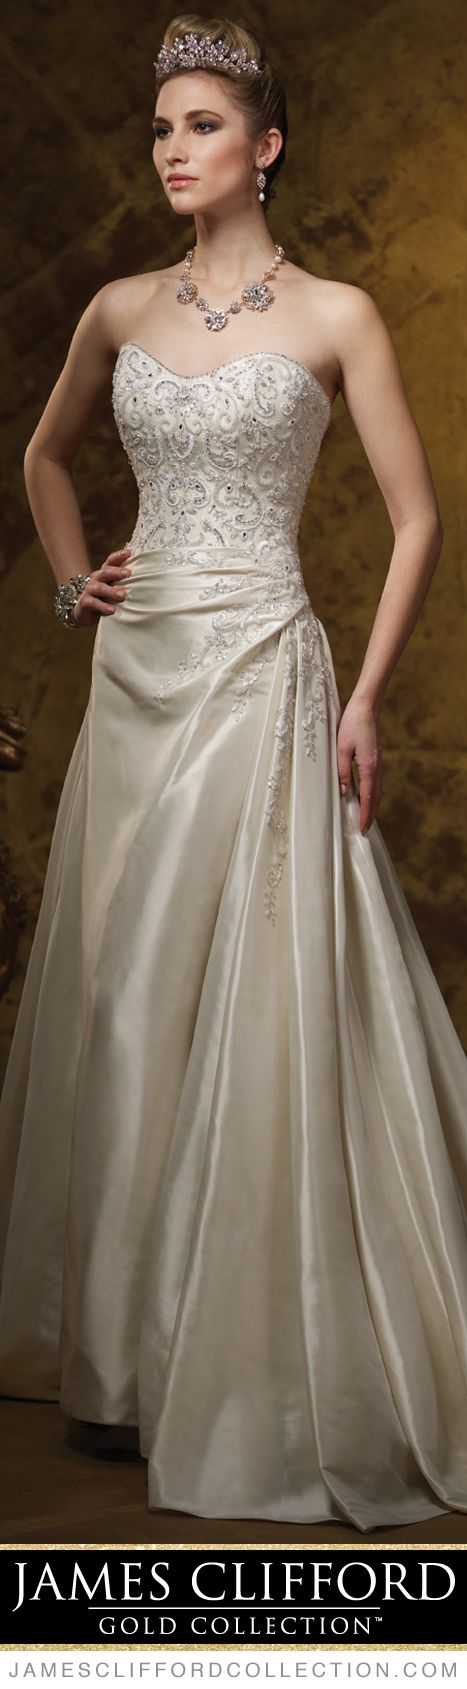 13 best images about fall 2014 wedding dress collection for No back wedding dress